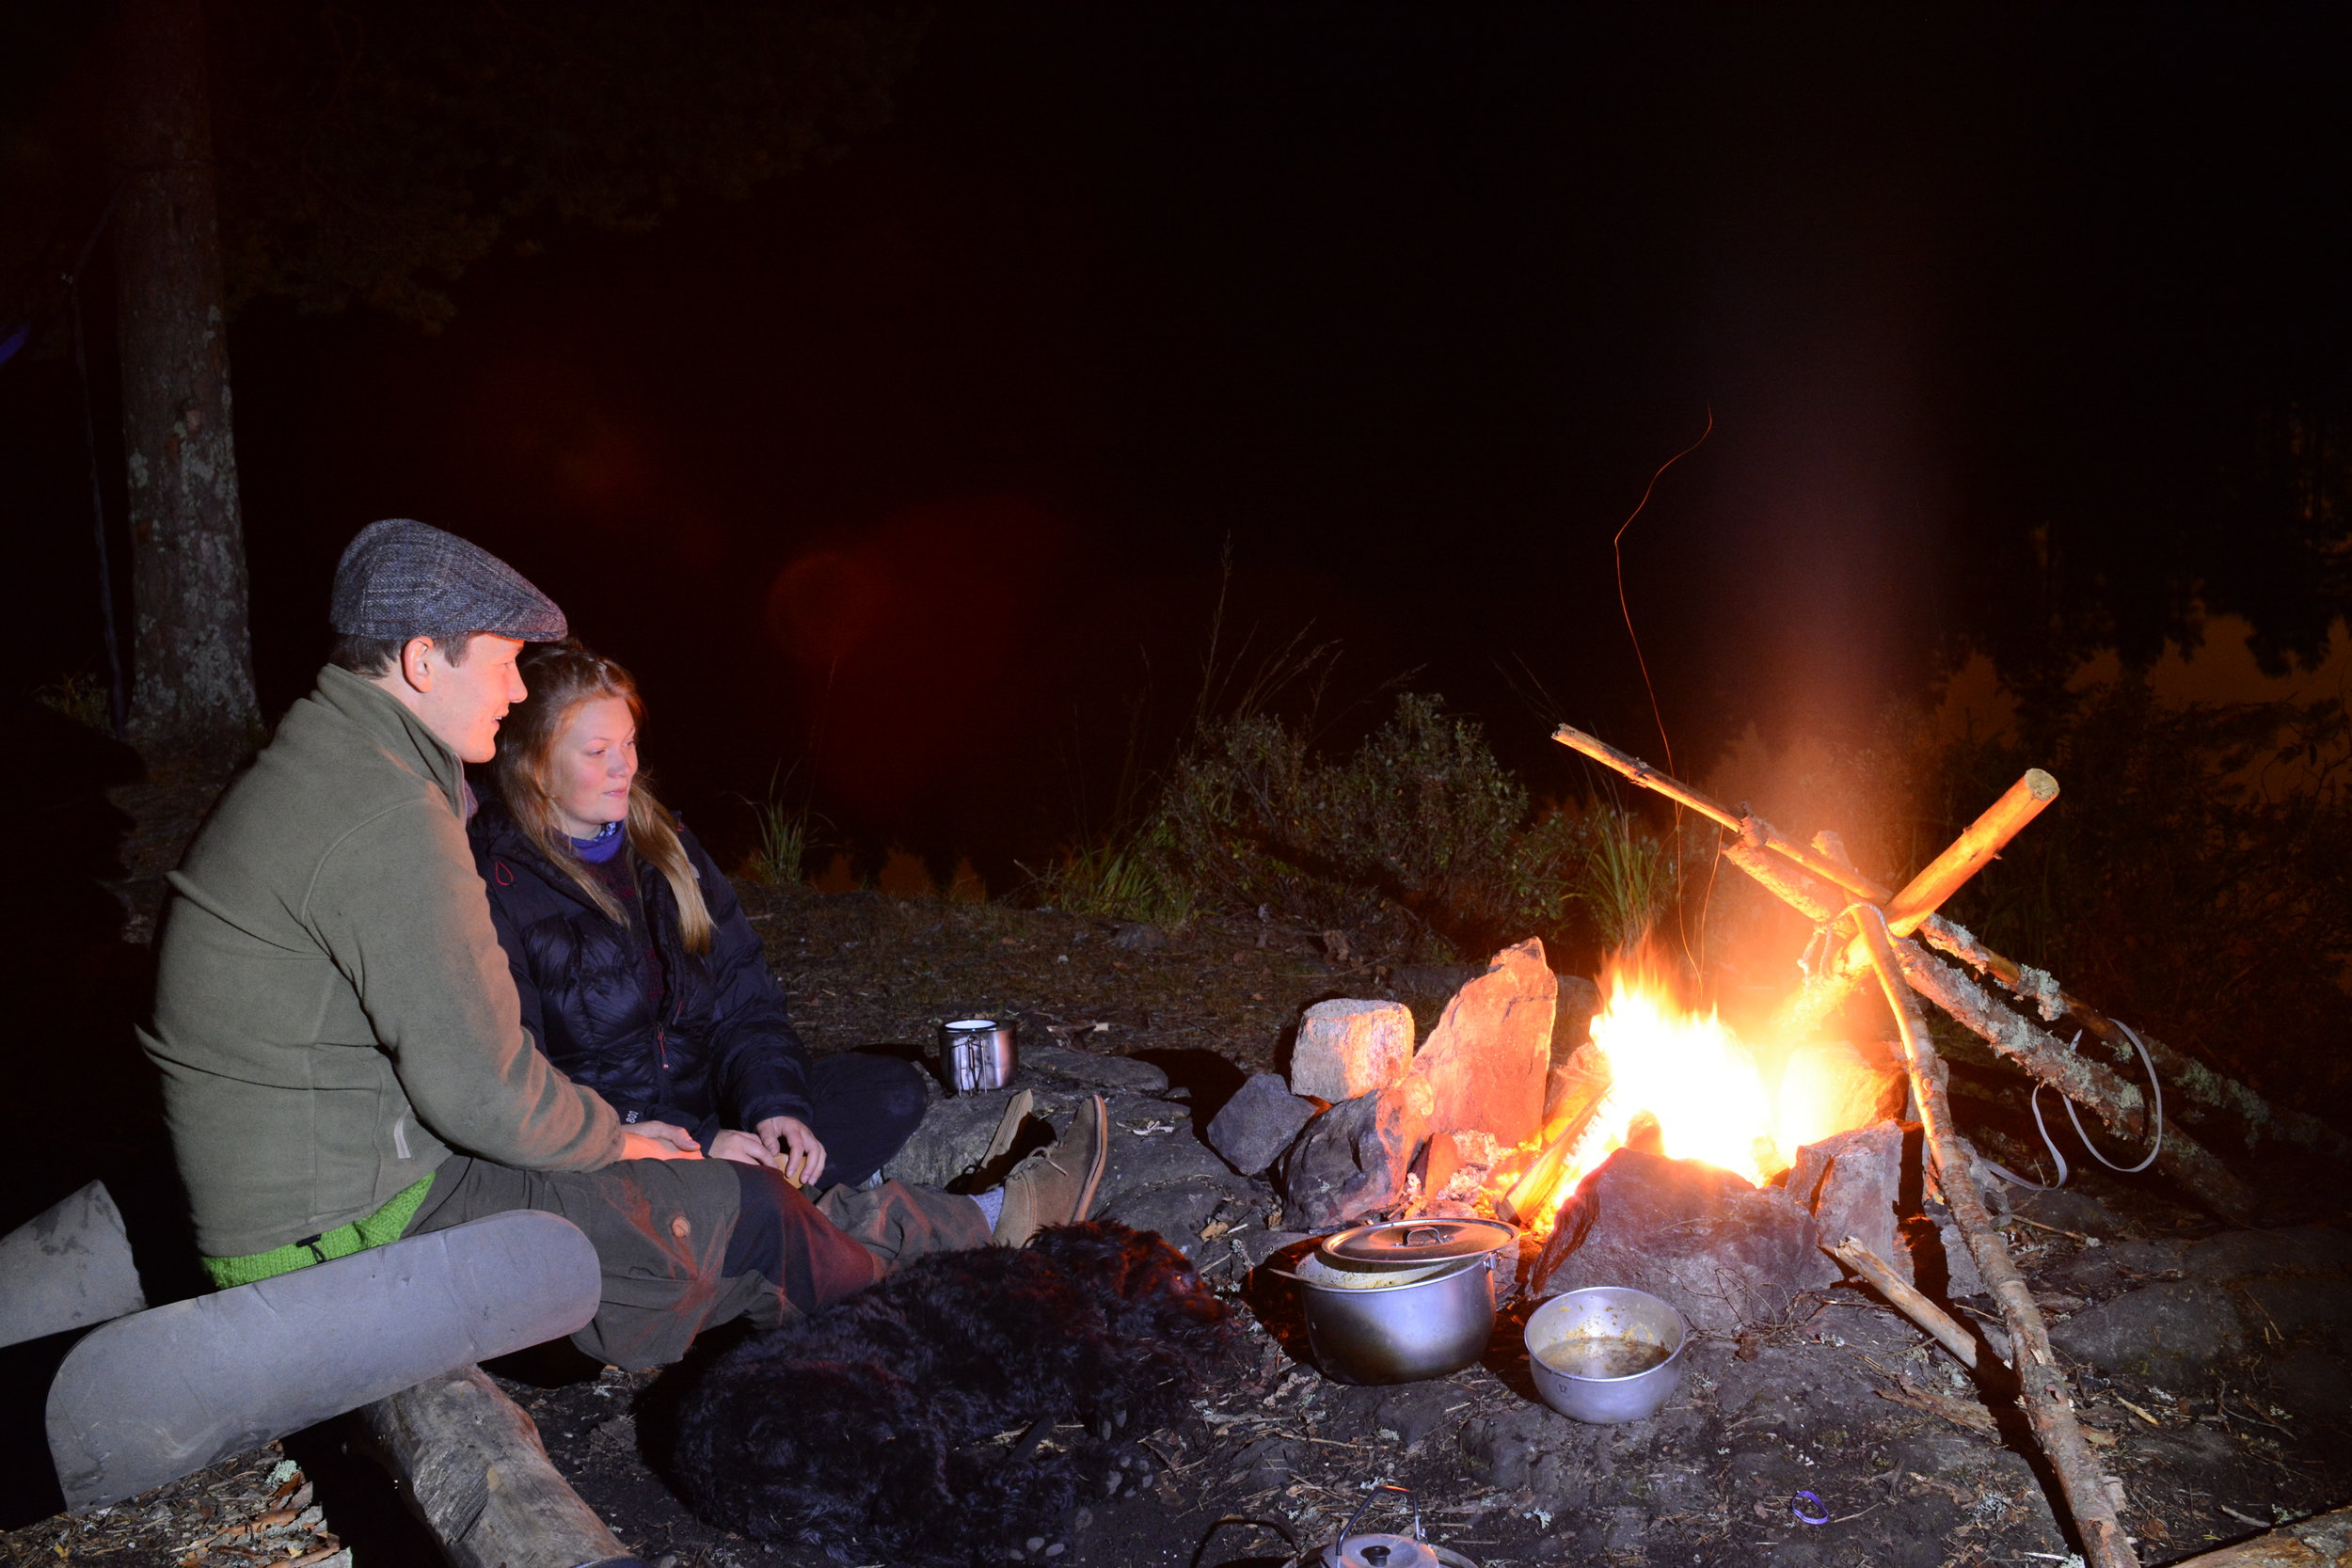 Campfire in Østmarka, where wolves reside. (Photo: Oslo Outdoor)